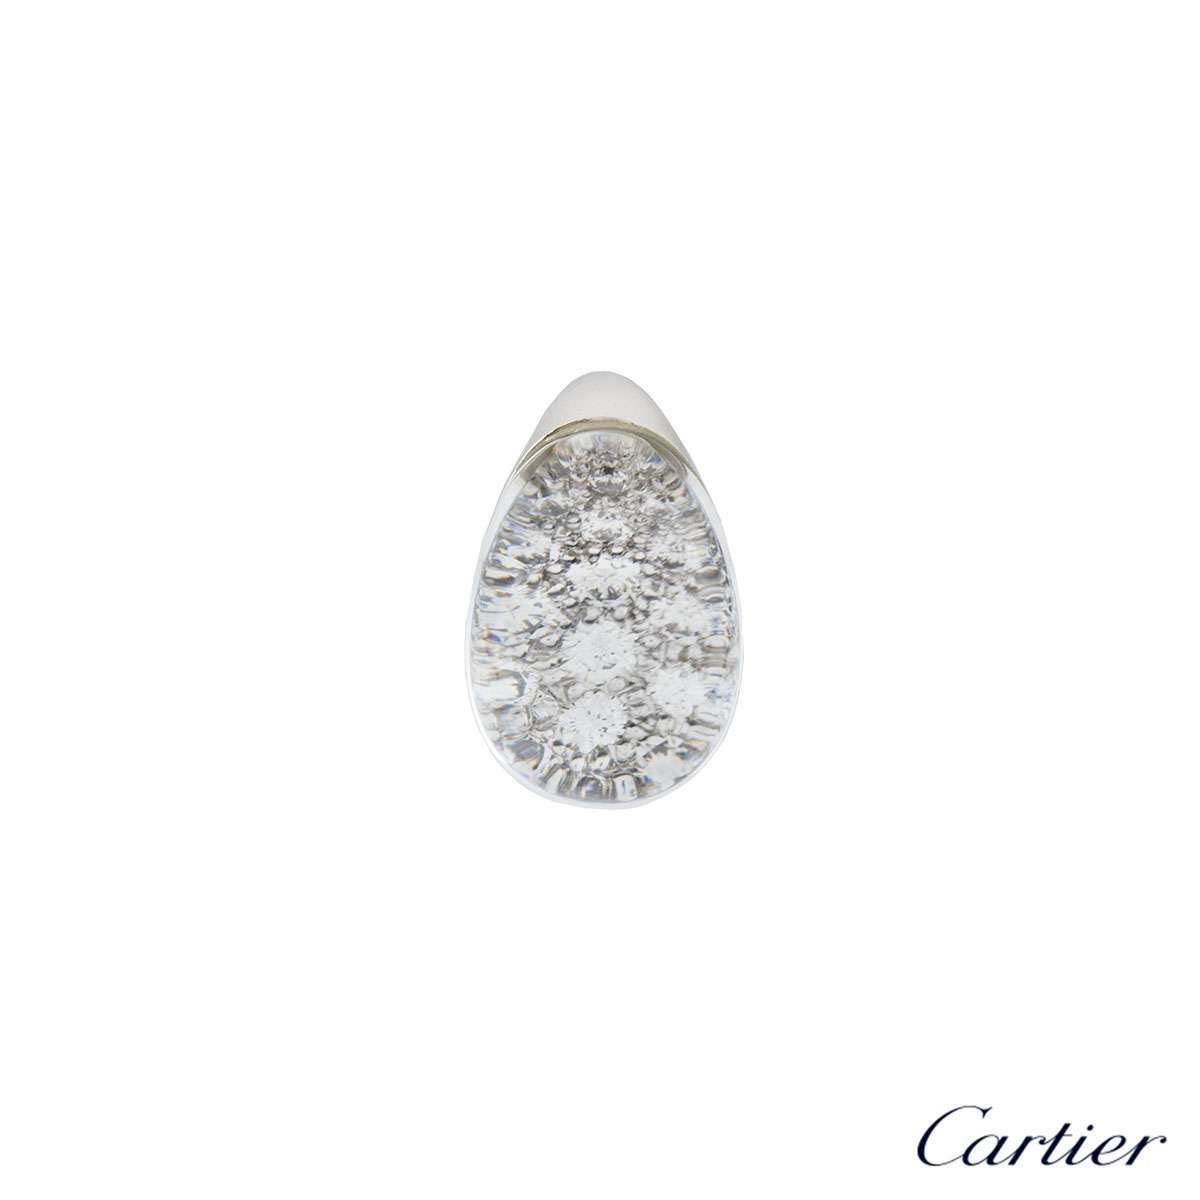 Cartier Myst Diamond Pendant